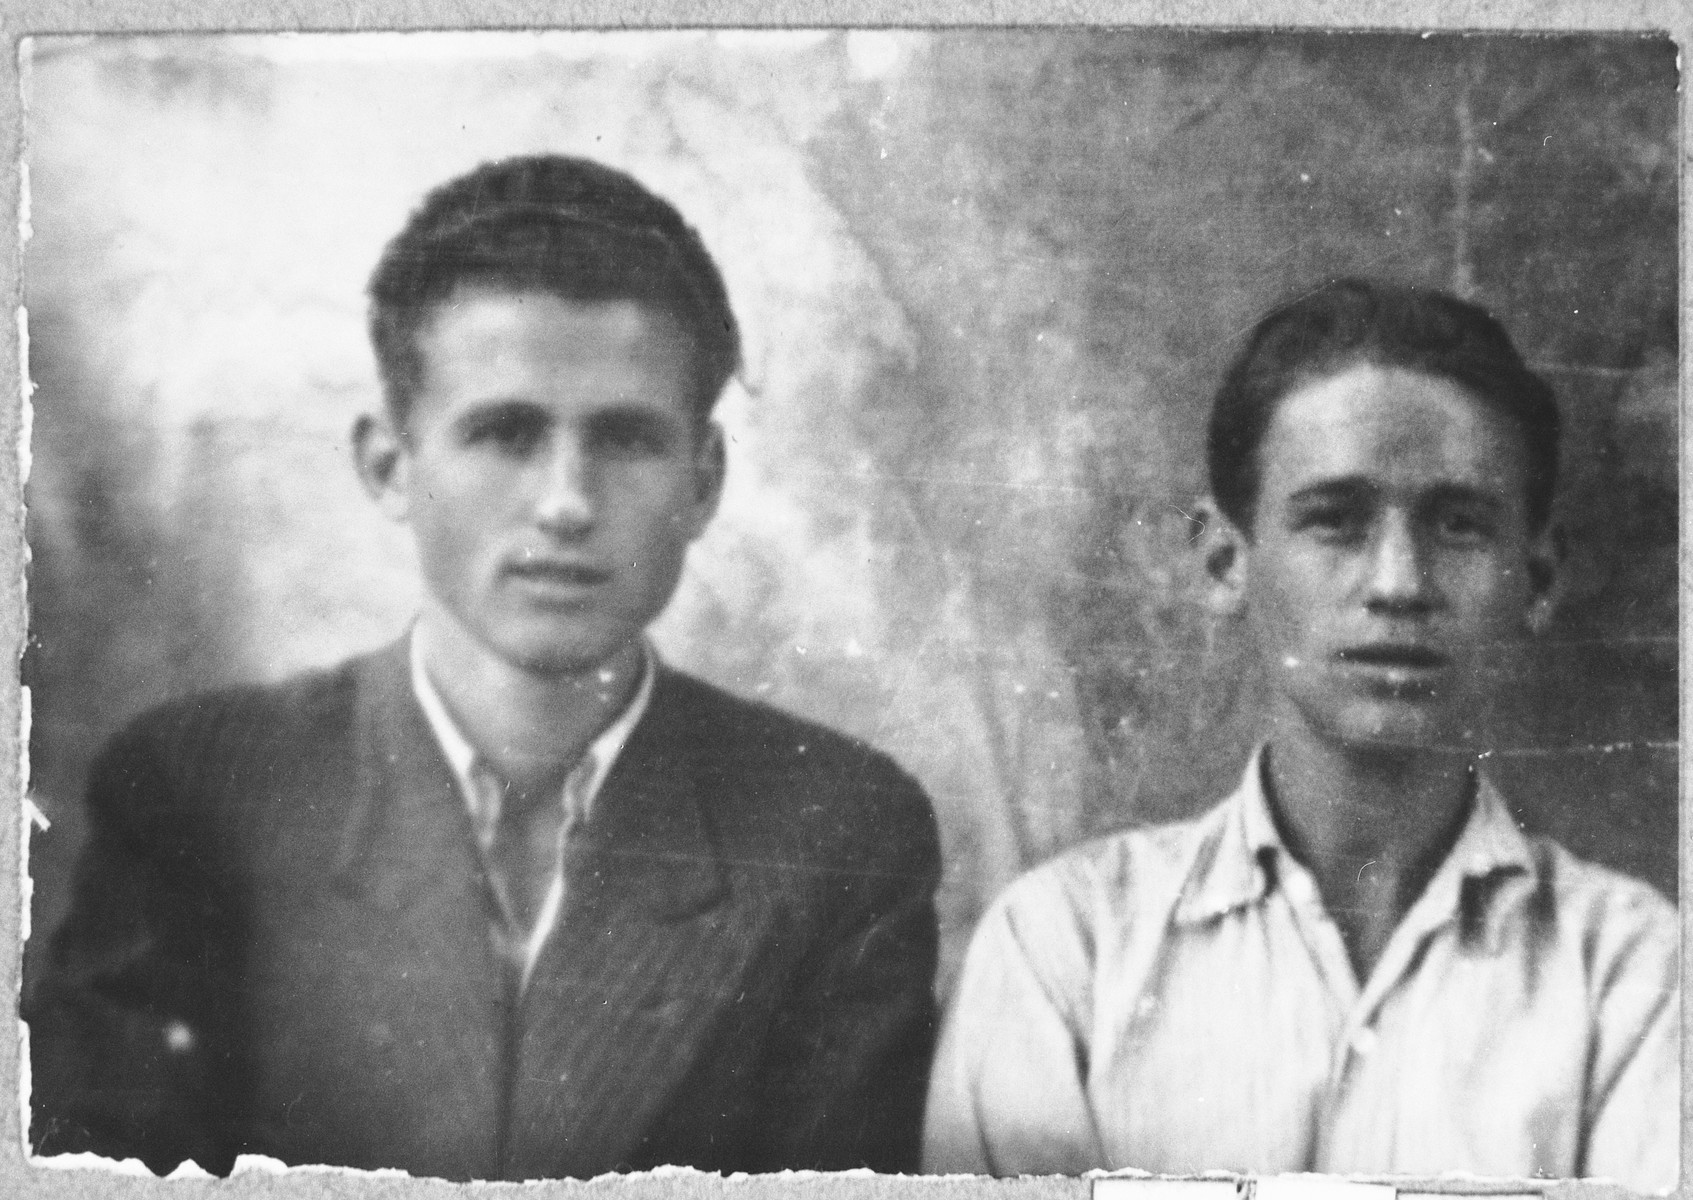 Portrait of Rachamin and Baruch Koen, sons of Eliau Koen.  Rachamin was a laborer and Baruch, a student.  They lived at Avliya 4 in Bitola.